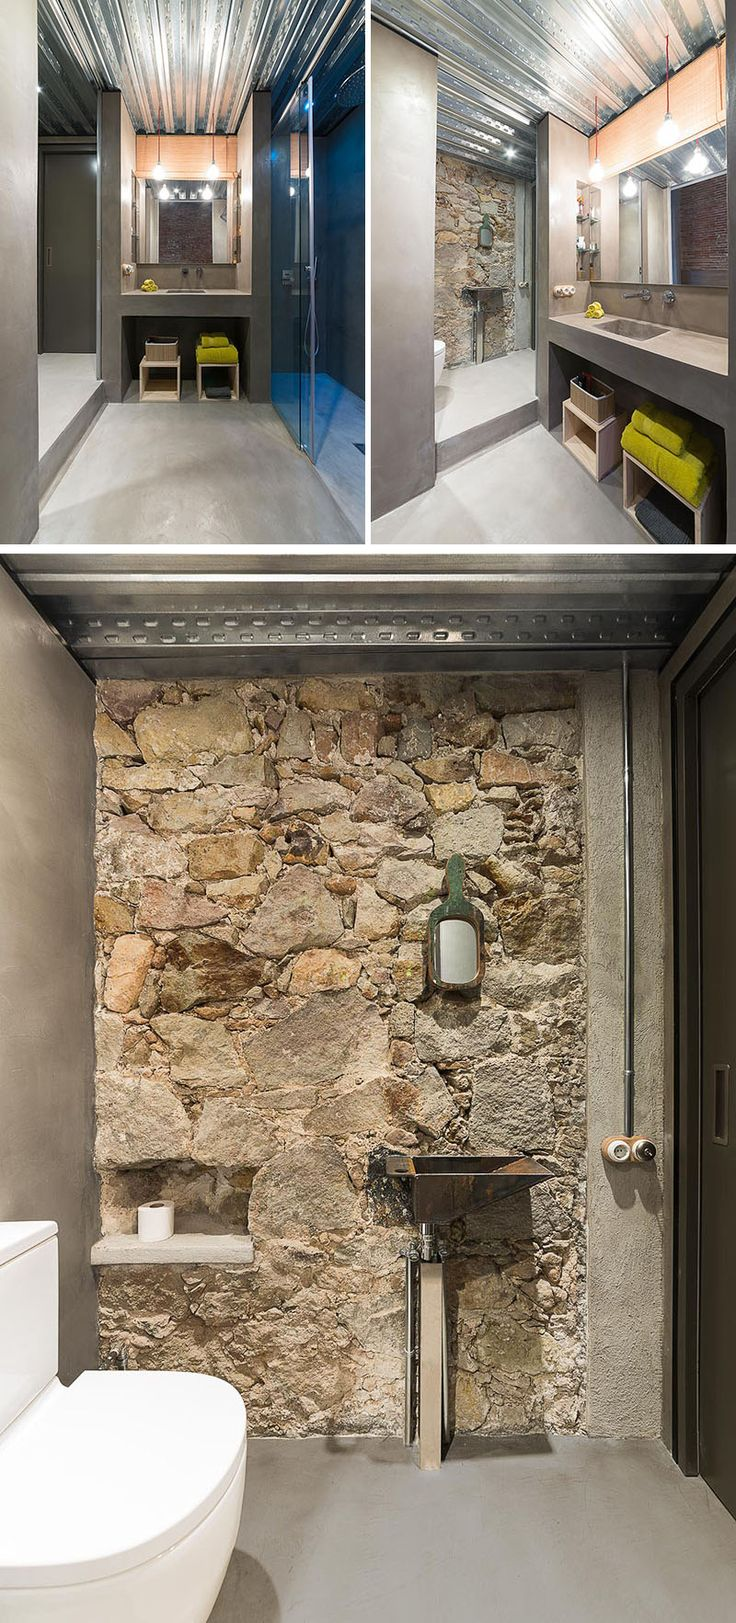 In this renovated bathroom, the vanity area and shower are stepped down from the toilet, and a metal ceiling helps to keep things bright. While the original stone wall has become a feature wall.